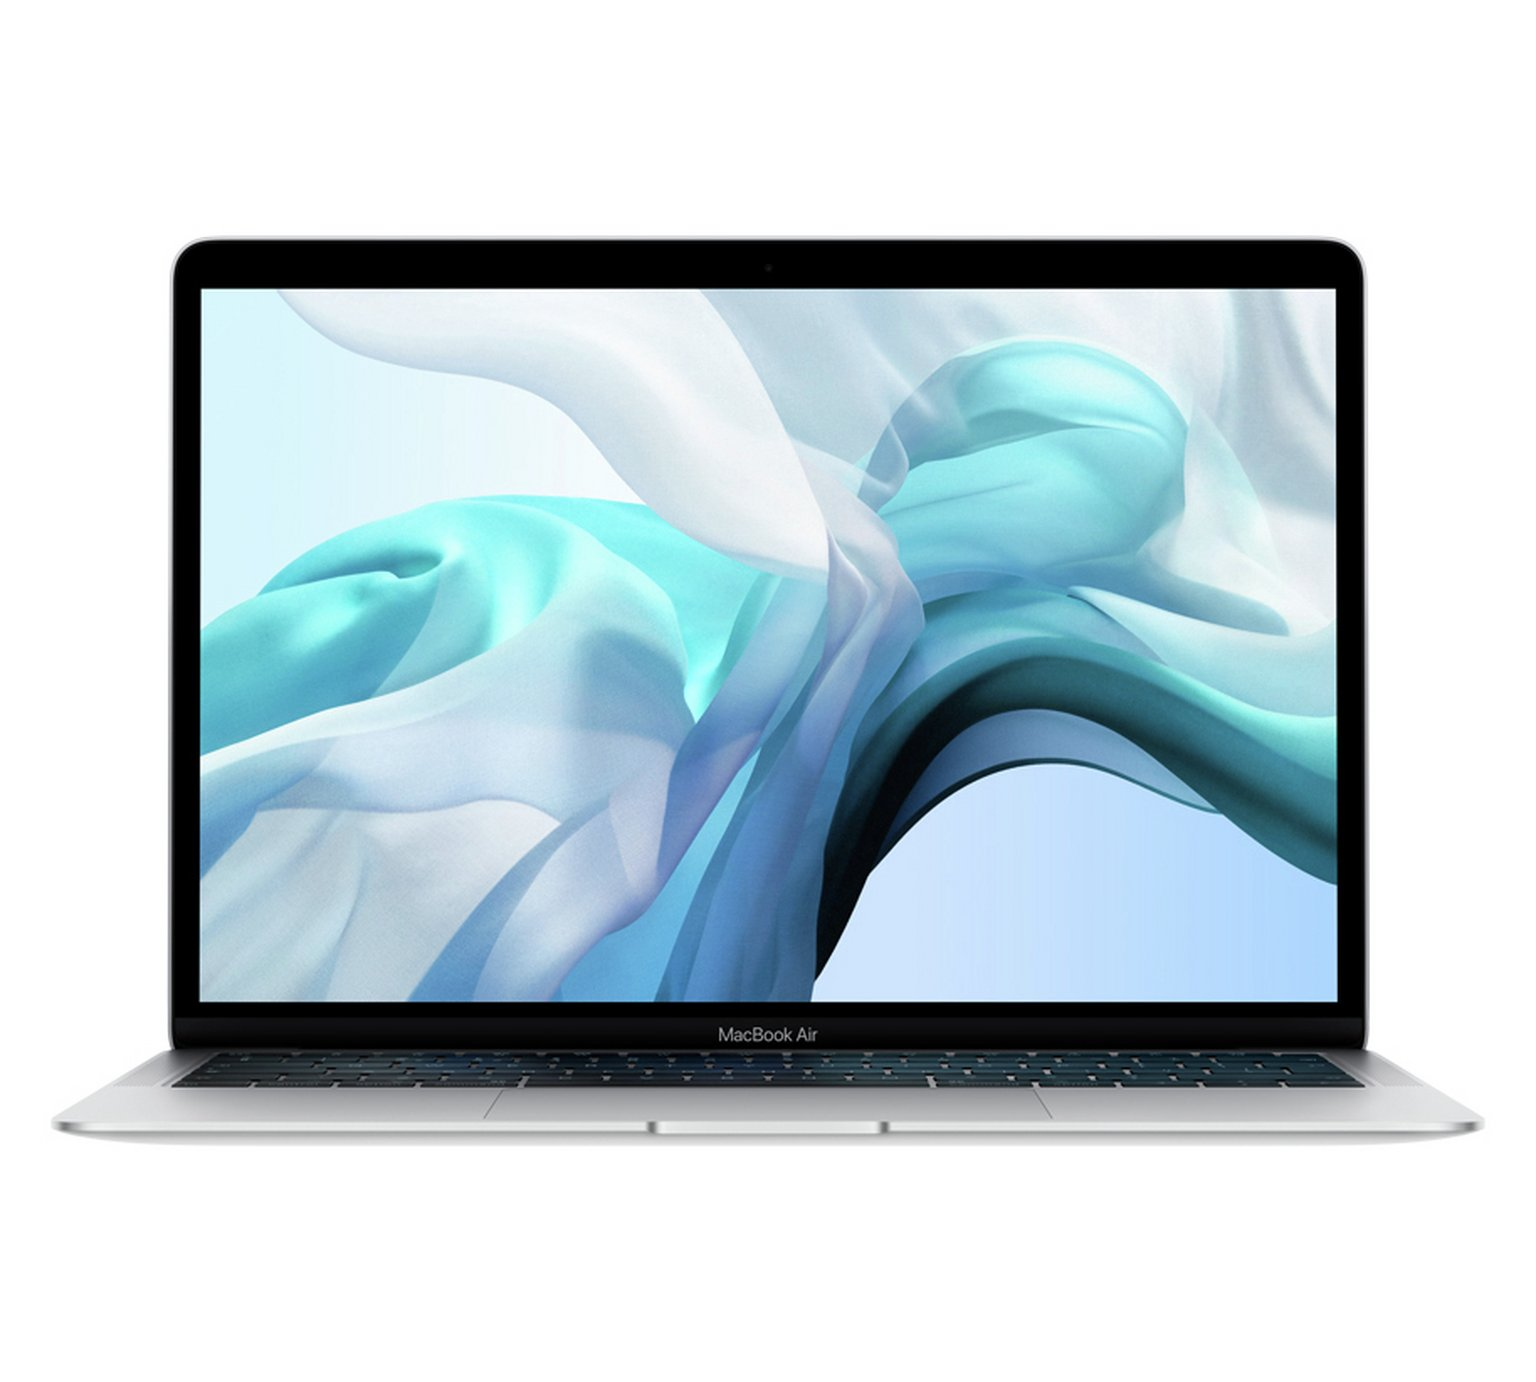 Apple MacBook Air 2018 13 Inch i5 8GB 256GB - Silver